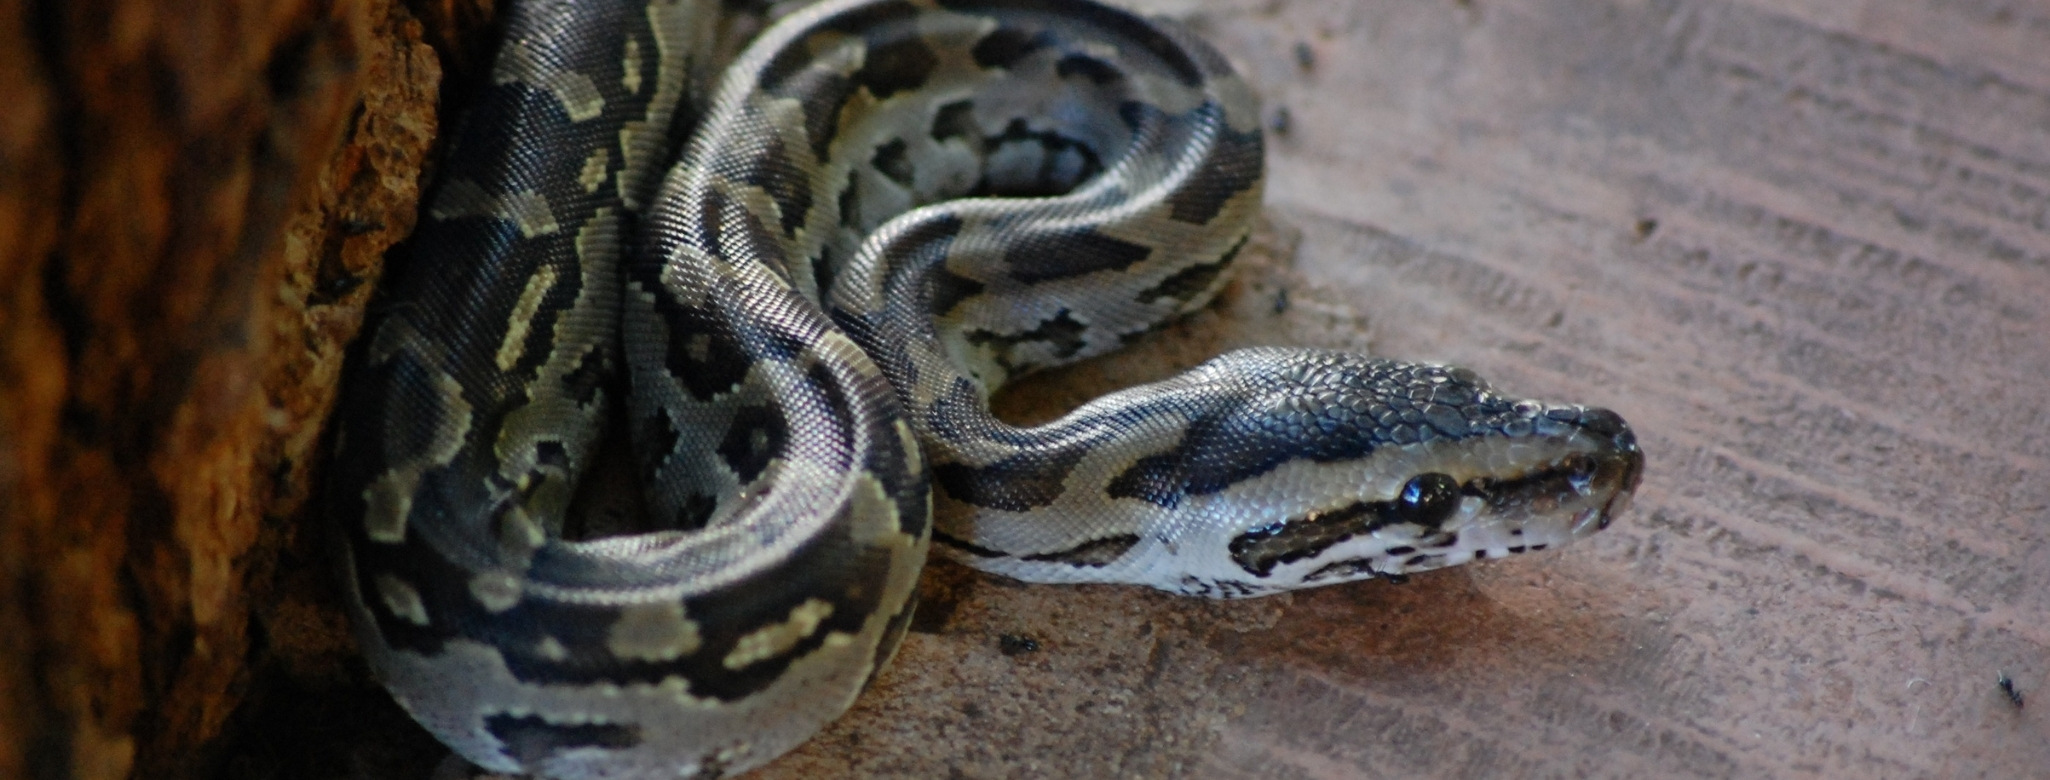 python snake removal in Florida